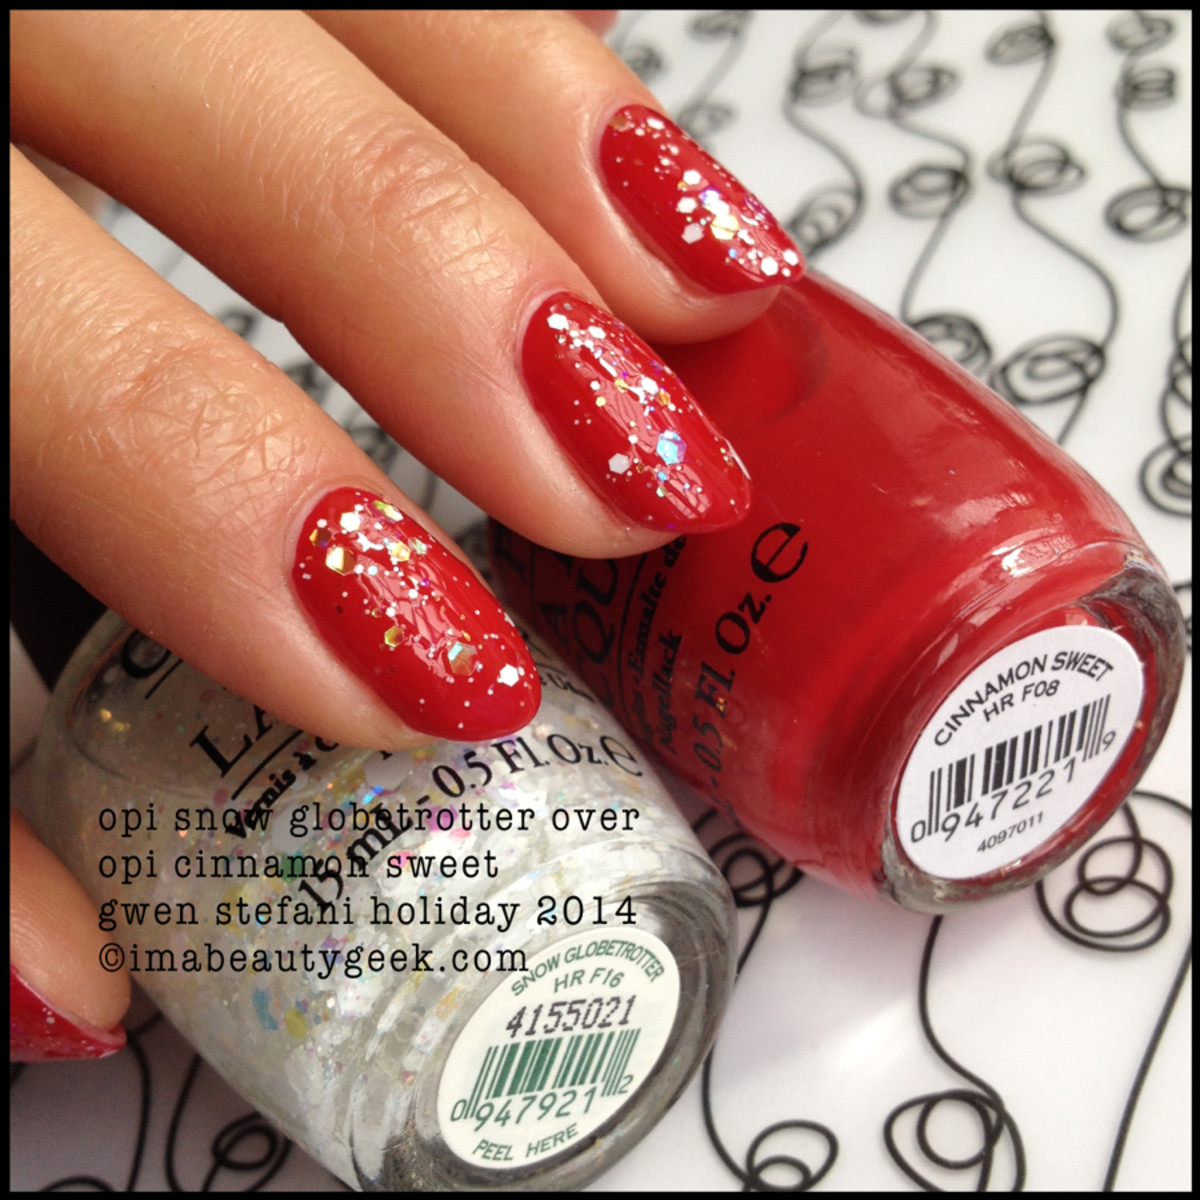 OPI Snow Globetrotter over OPI Cinnamon Sweet Gwen Stefani Holiday 2014